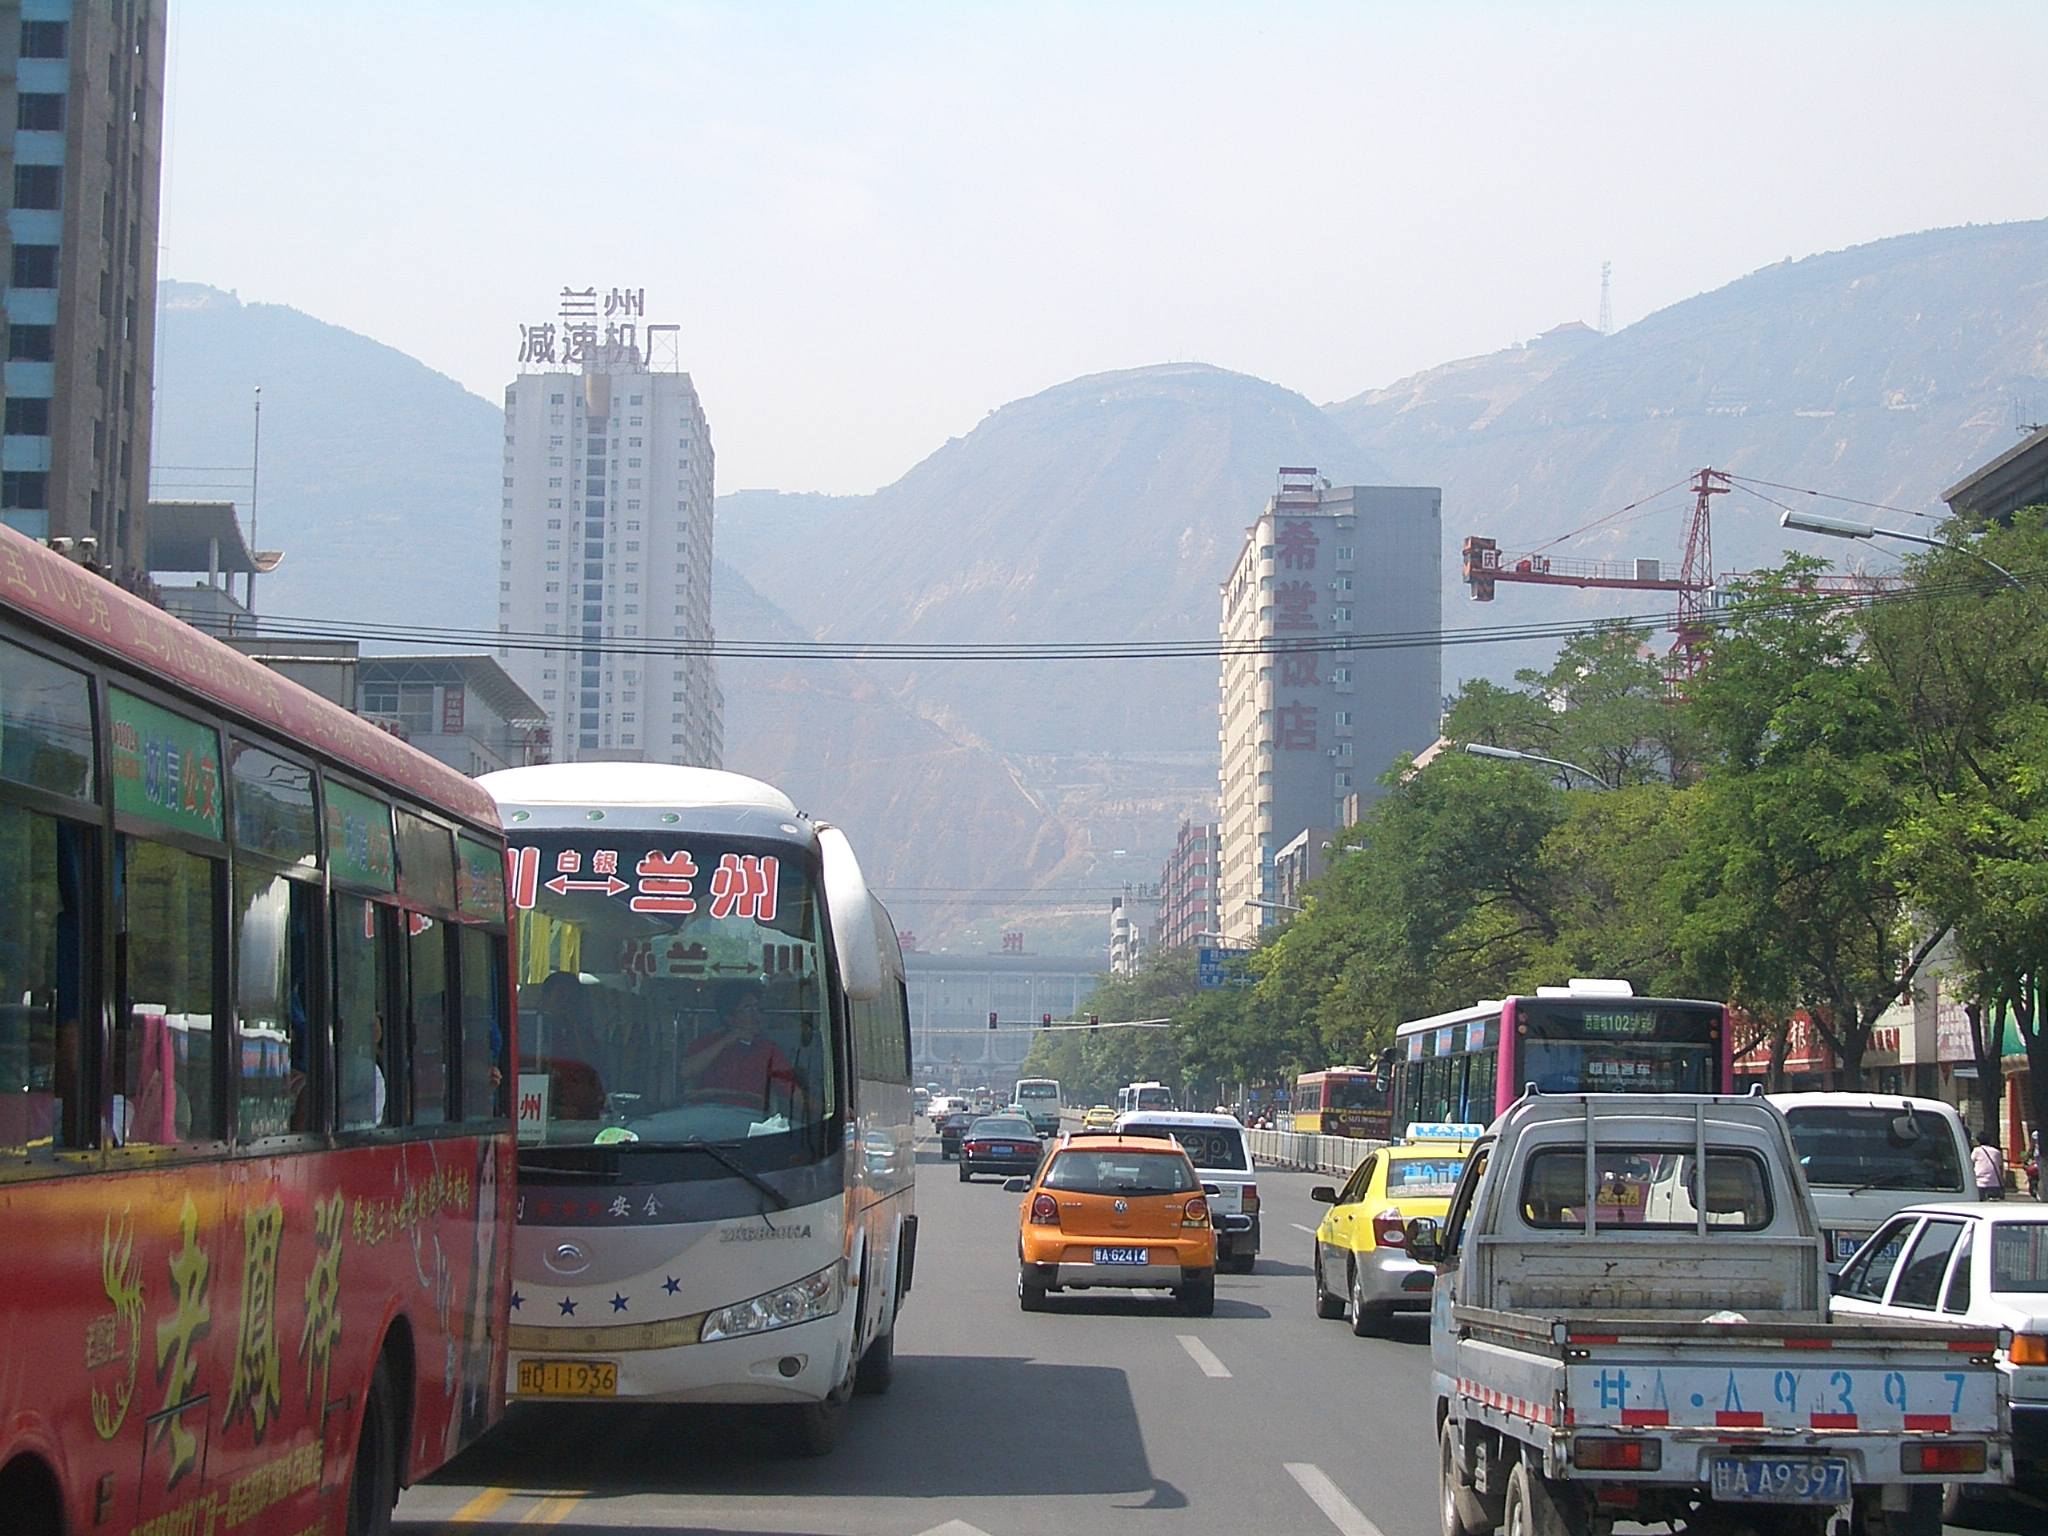 lanzhou dating Lanzhou, the capital and largest city of gansu province (nw china), is situated in discussion of dating and basin/fluvial evolution, including knickpoints.